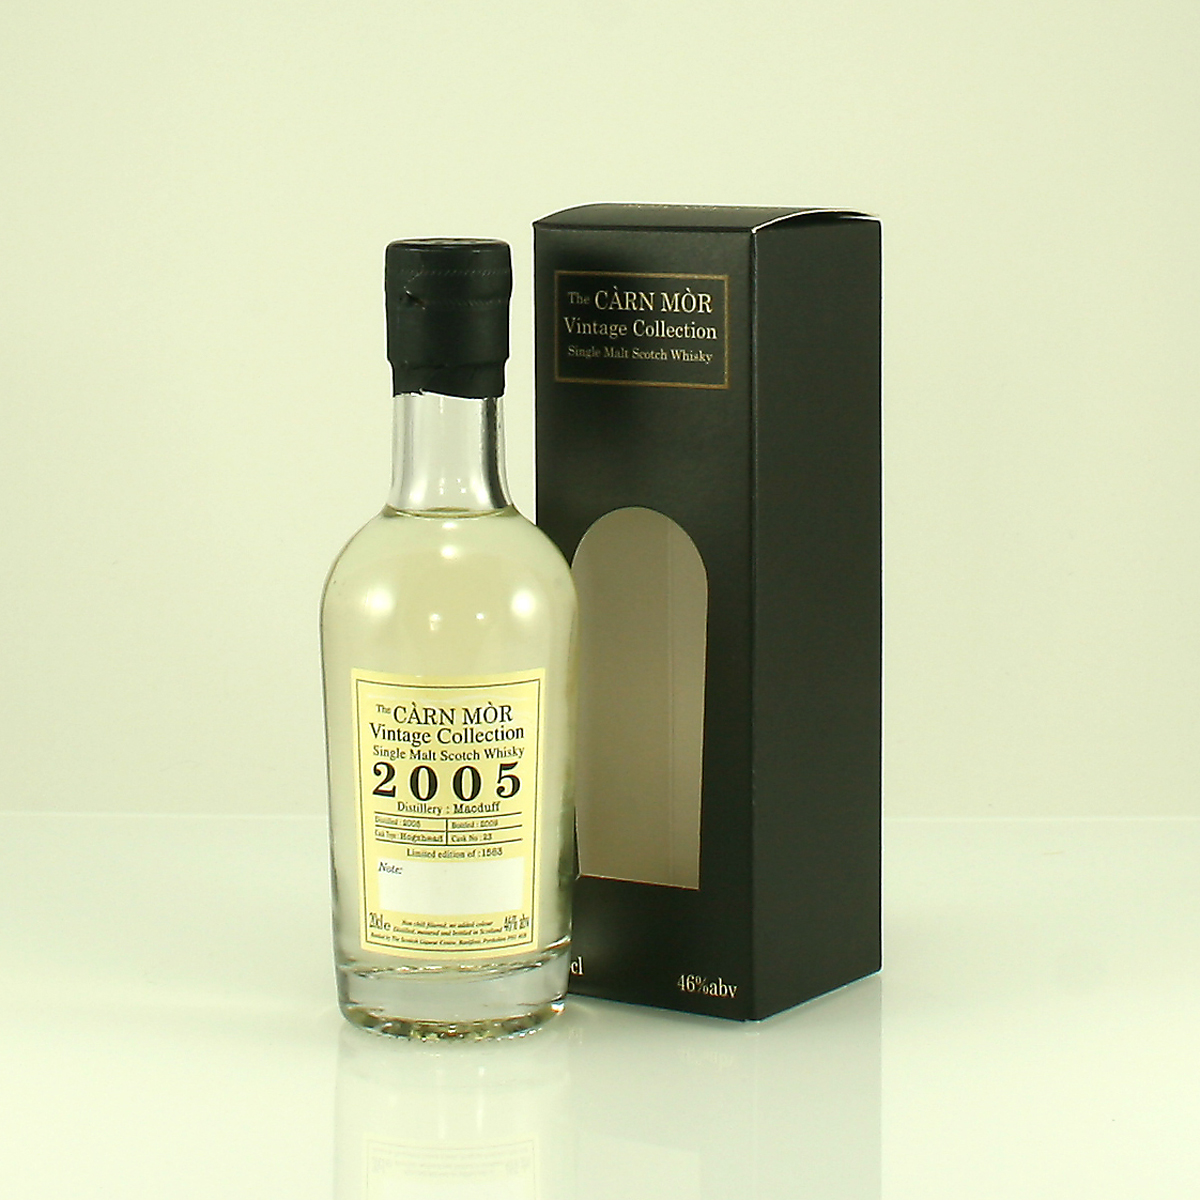 Can Mor Vintage Collection MacDuff 2005 20cl 46%